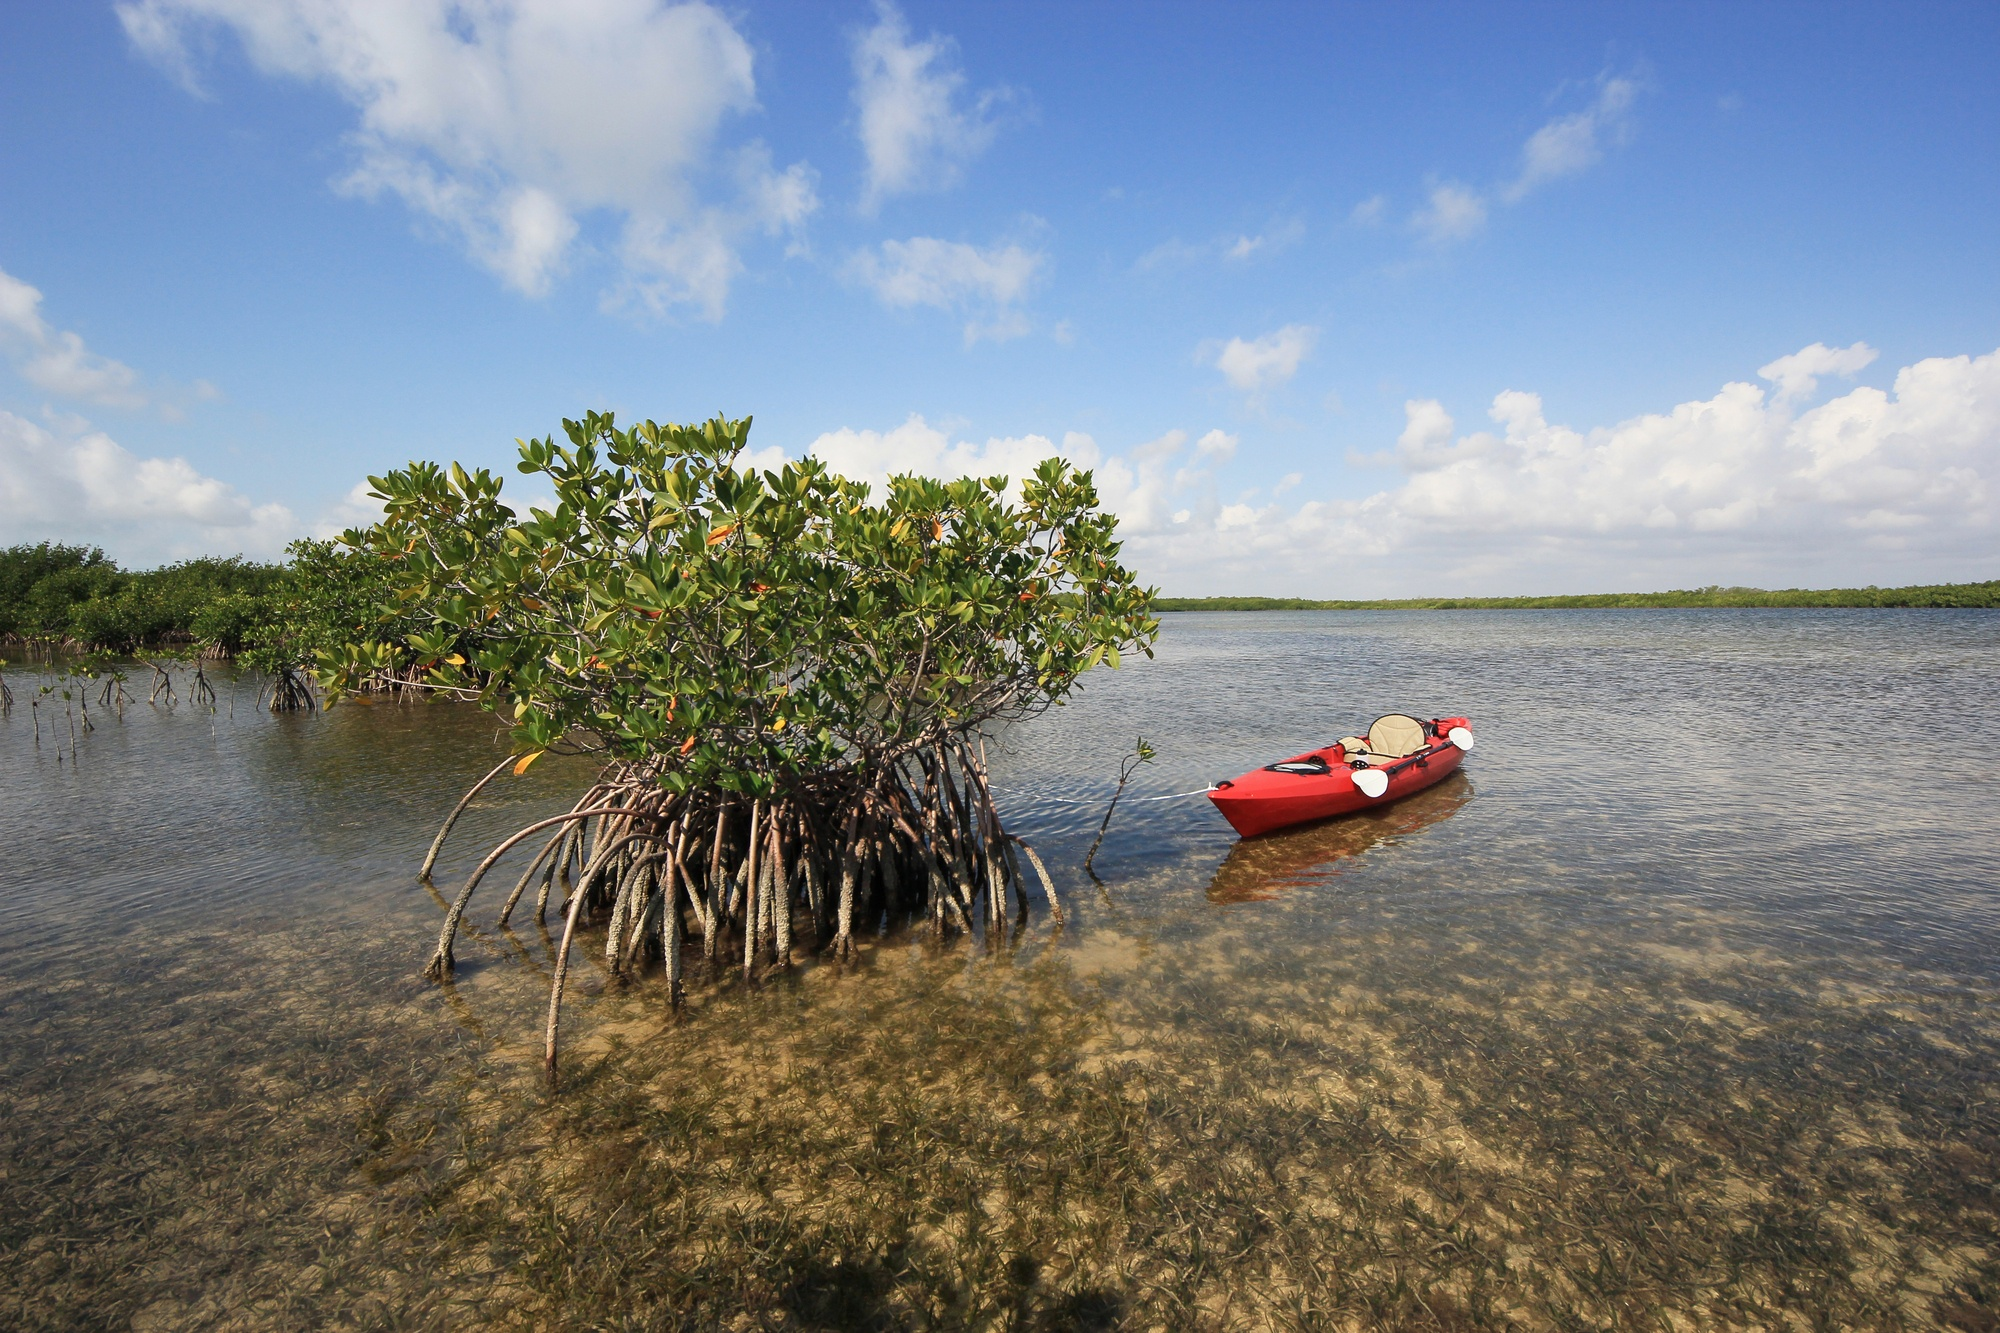 Kayak near a red mangrove tree on turtle grass beds in Biscayne National Park